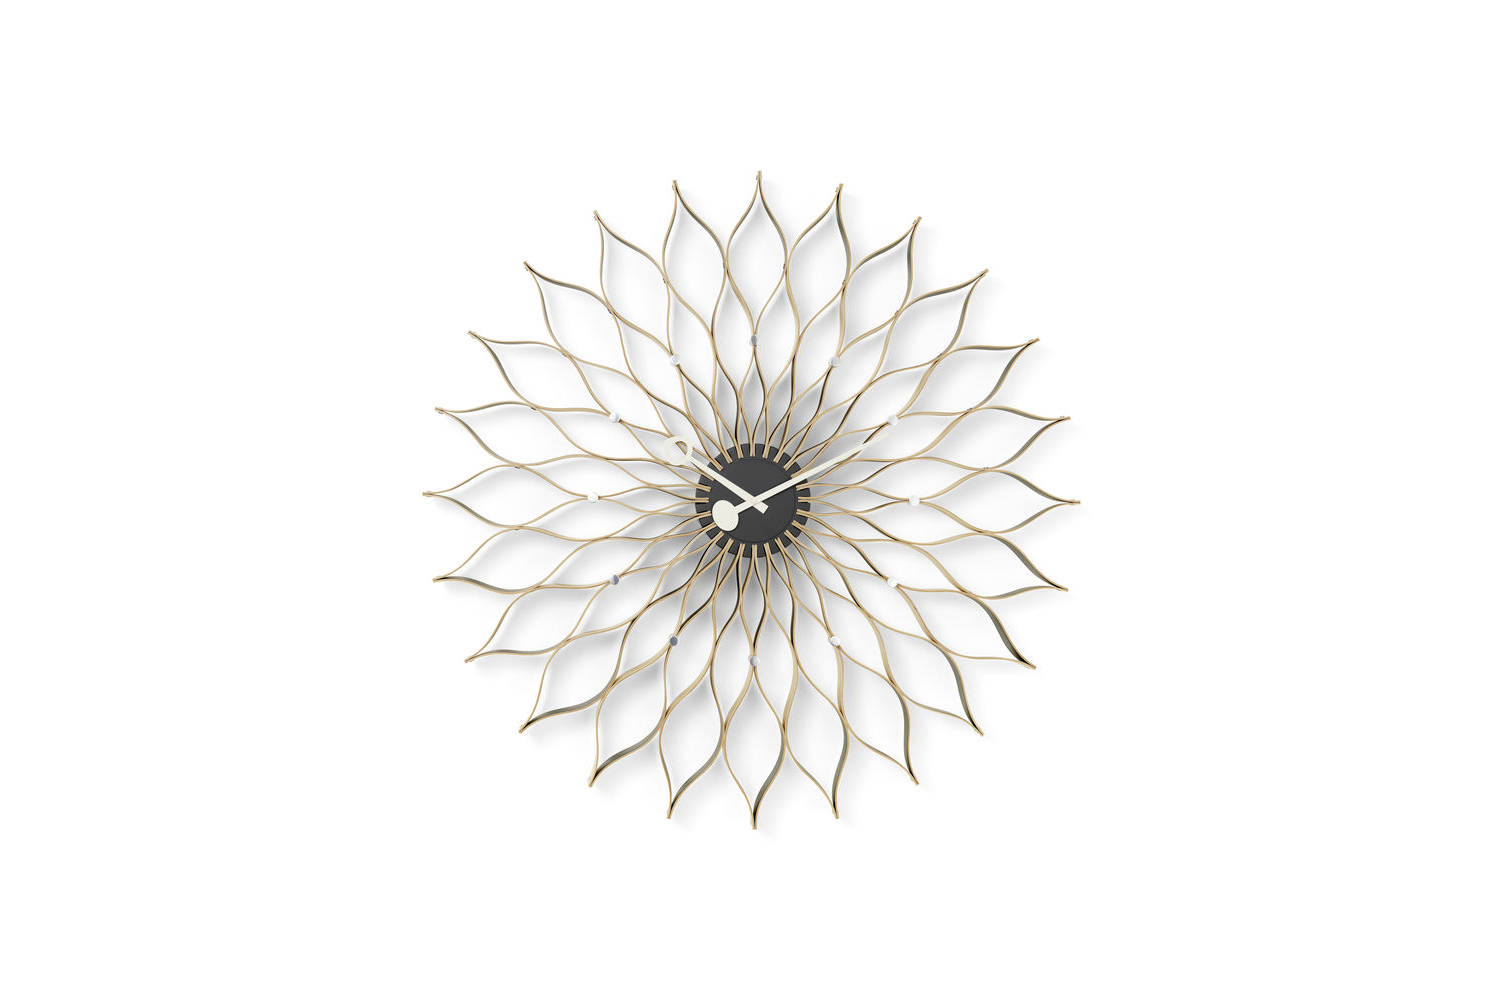 Sunflower George Furniture Nelson By Clock For VitraSpace ulcKF1J35T